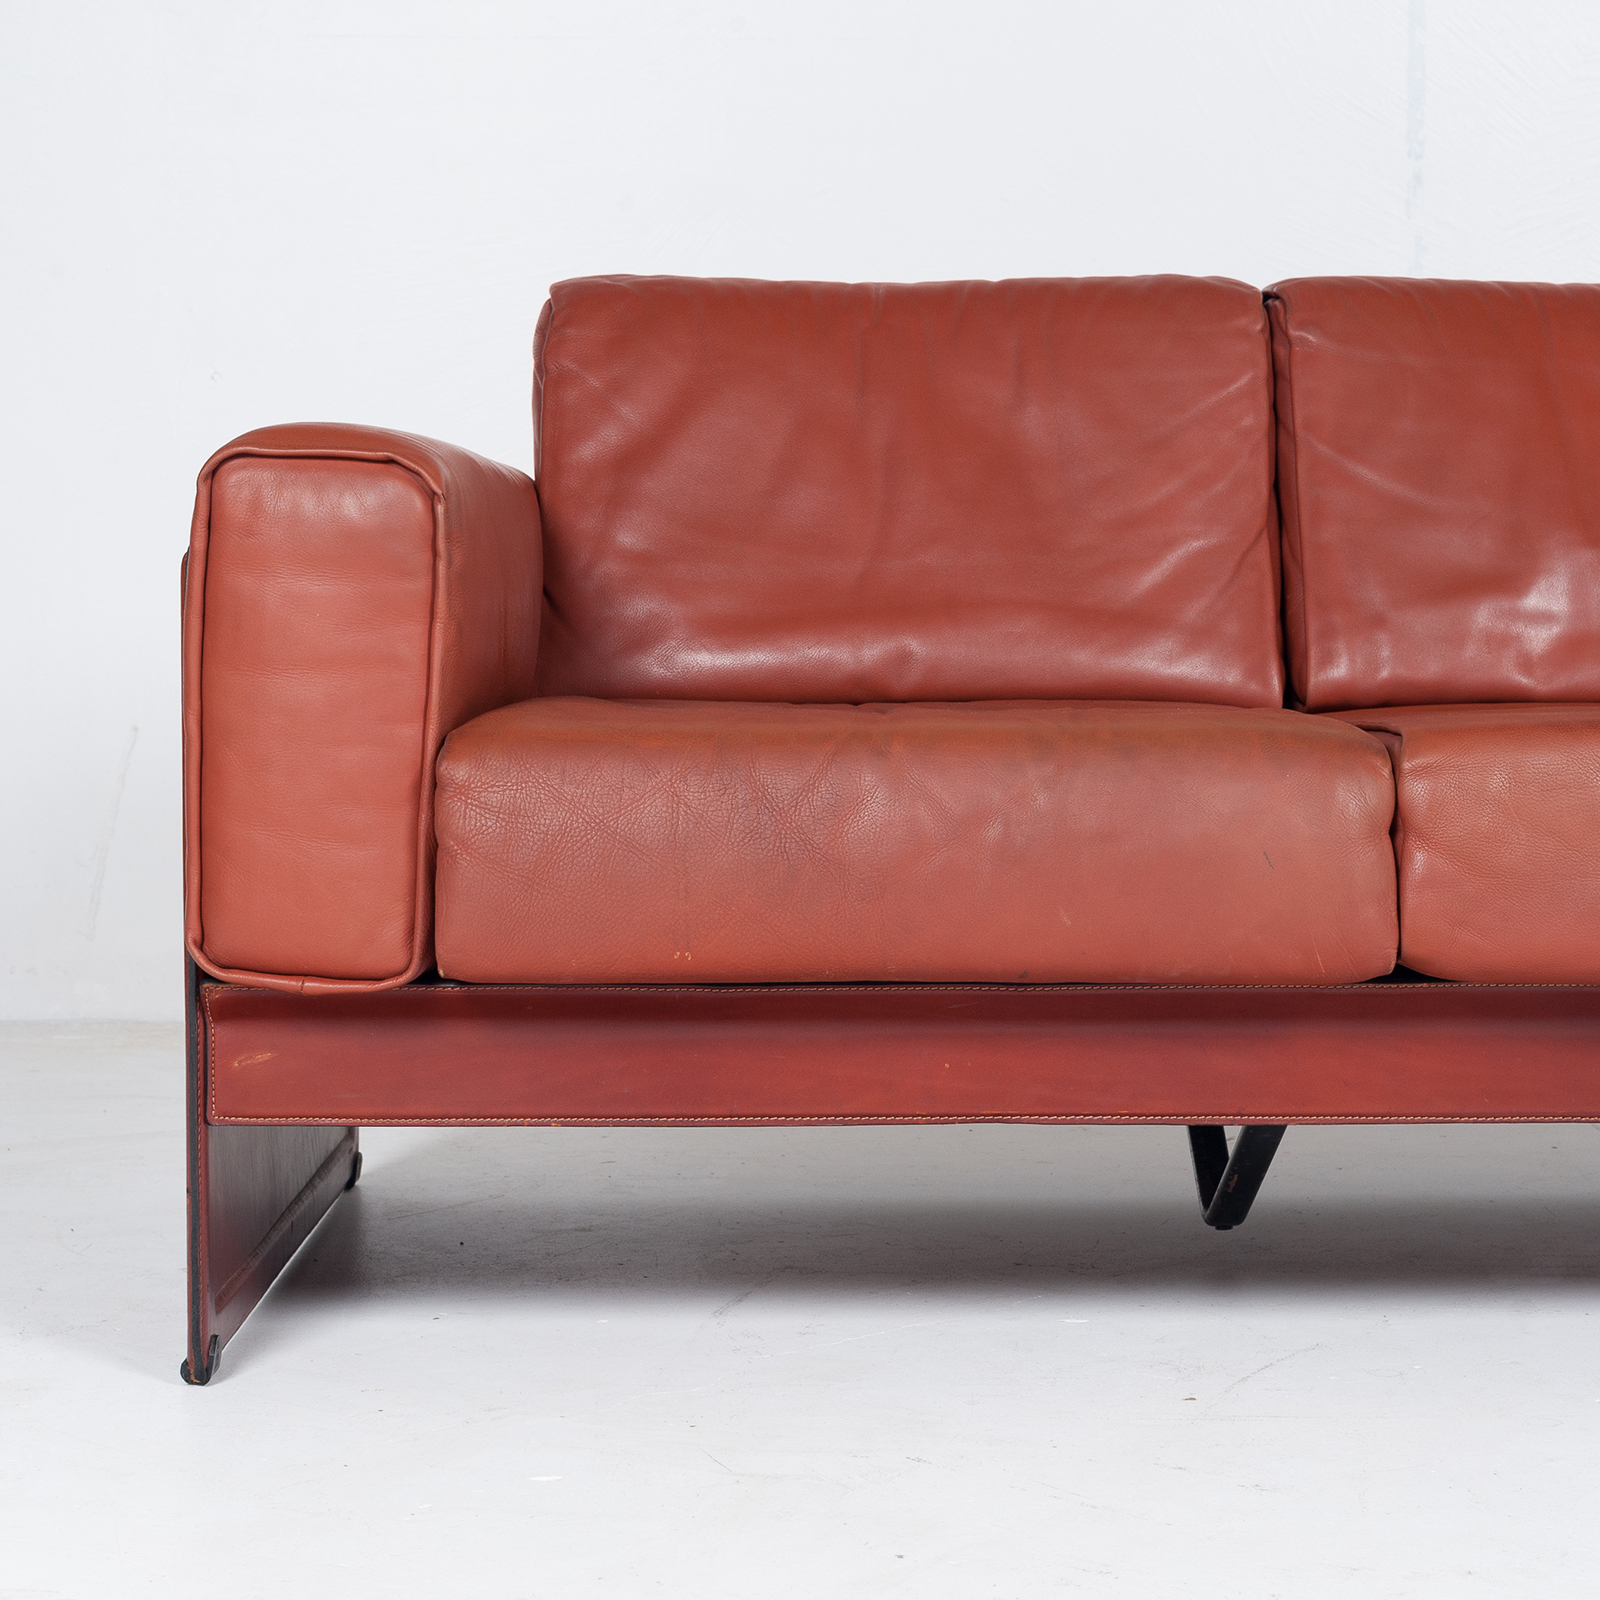 3 Seat Sofa In Leather By Matteo Grassi, 1980s, Italy49